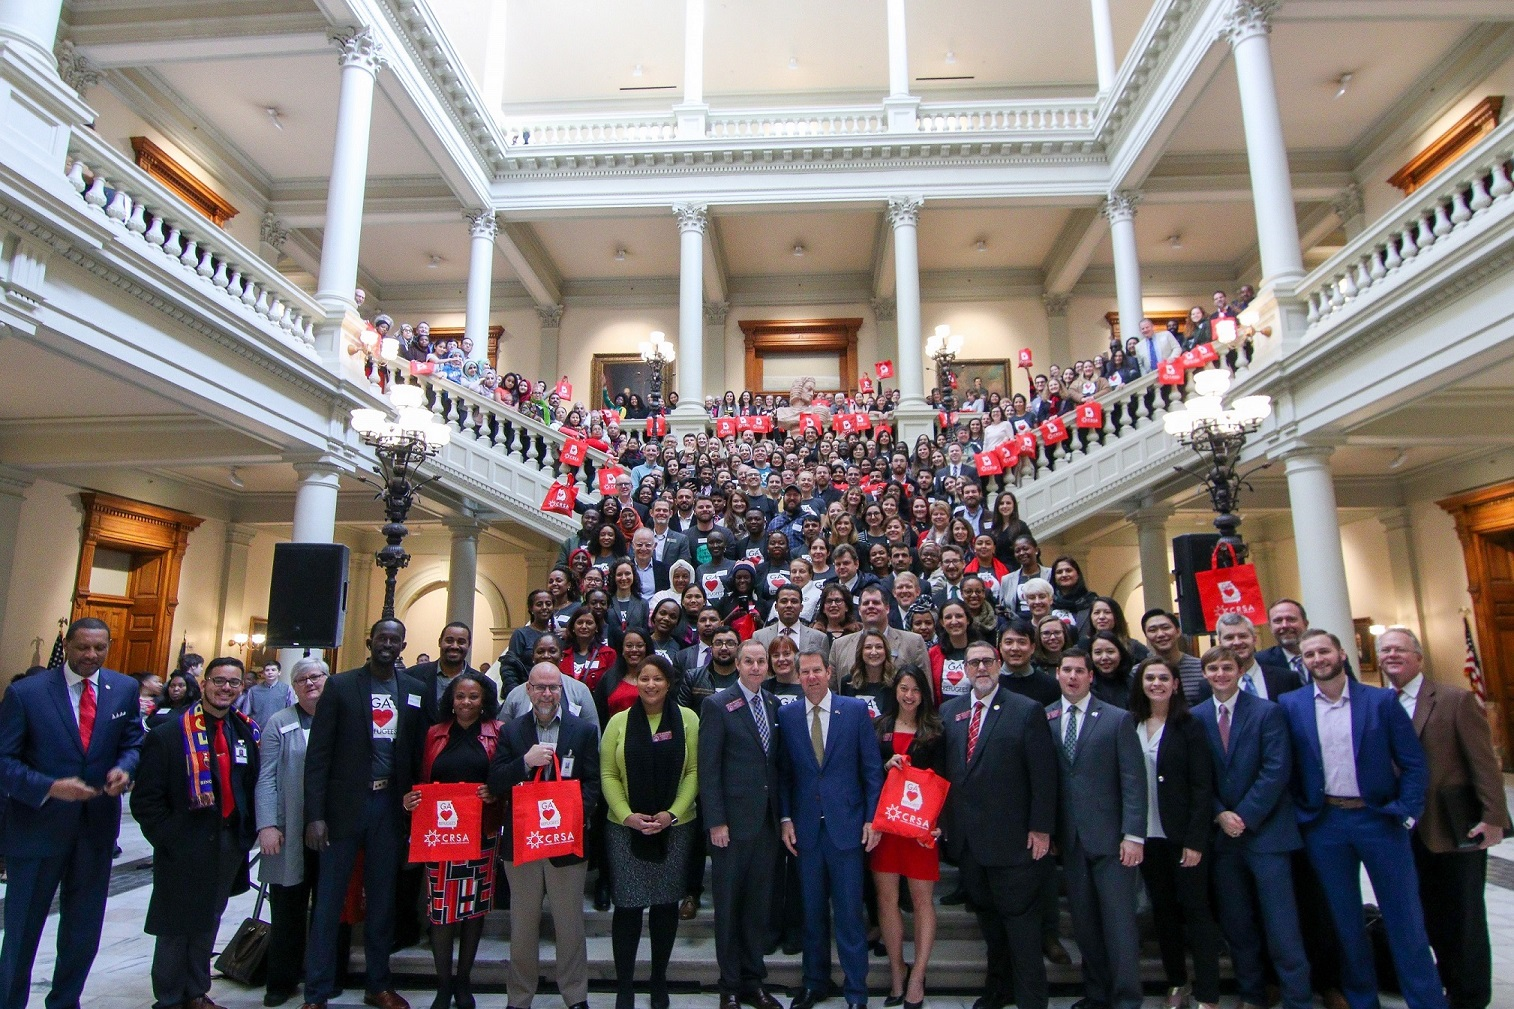 A large marble stairwell in the Georgia State Capitol holds more than 300 people, attendees at last year's New Americans Celebration. Georgia's Governor Brian Kemp stands front and center, will members of the House and Senate and CRSA's leadership.